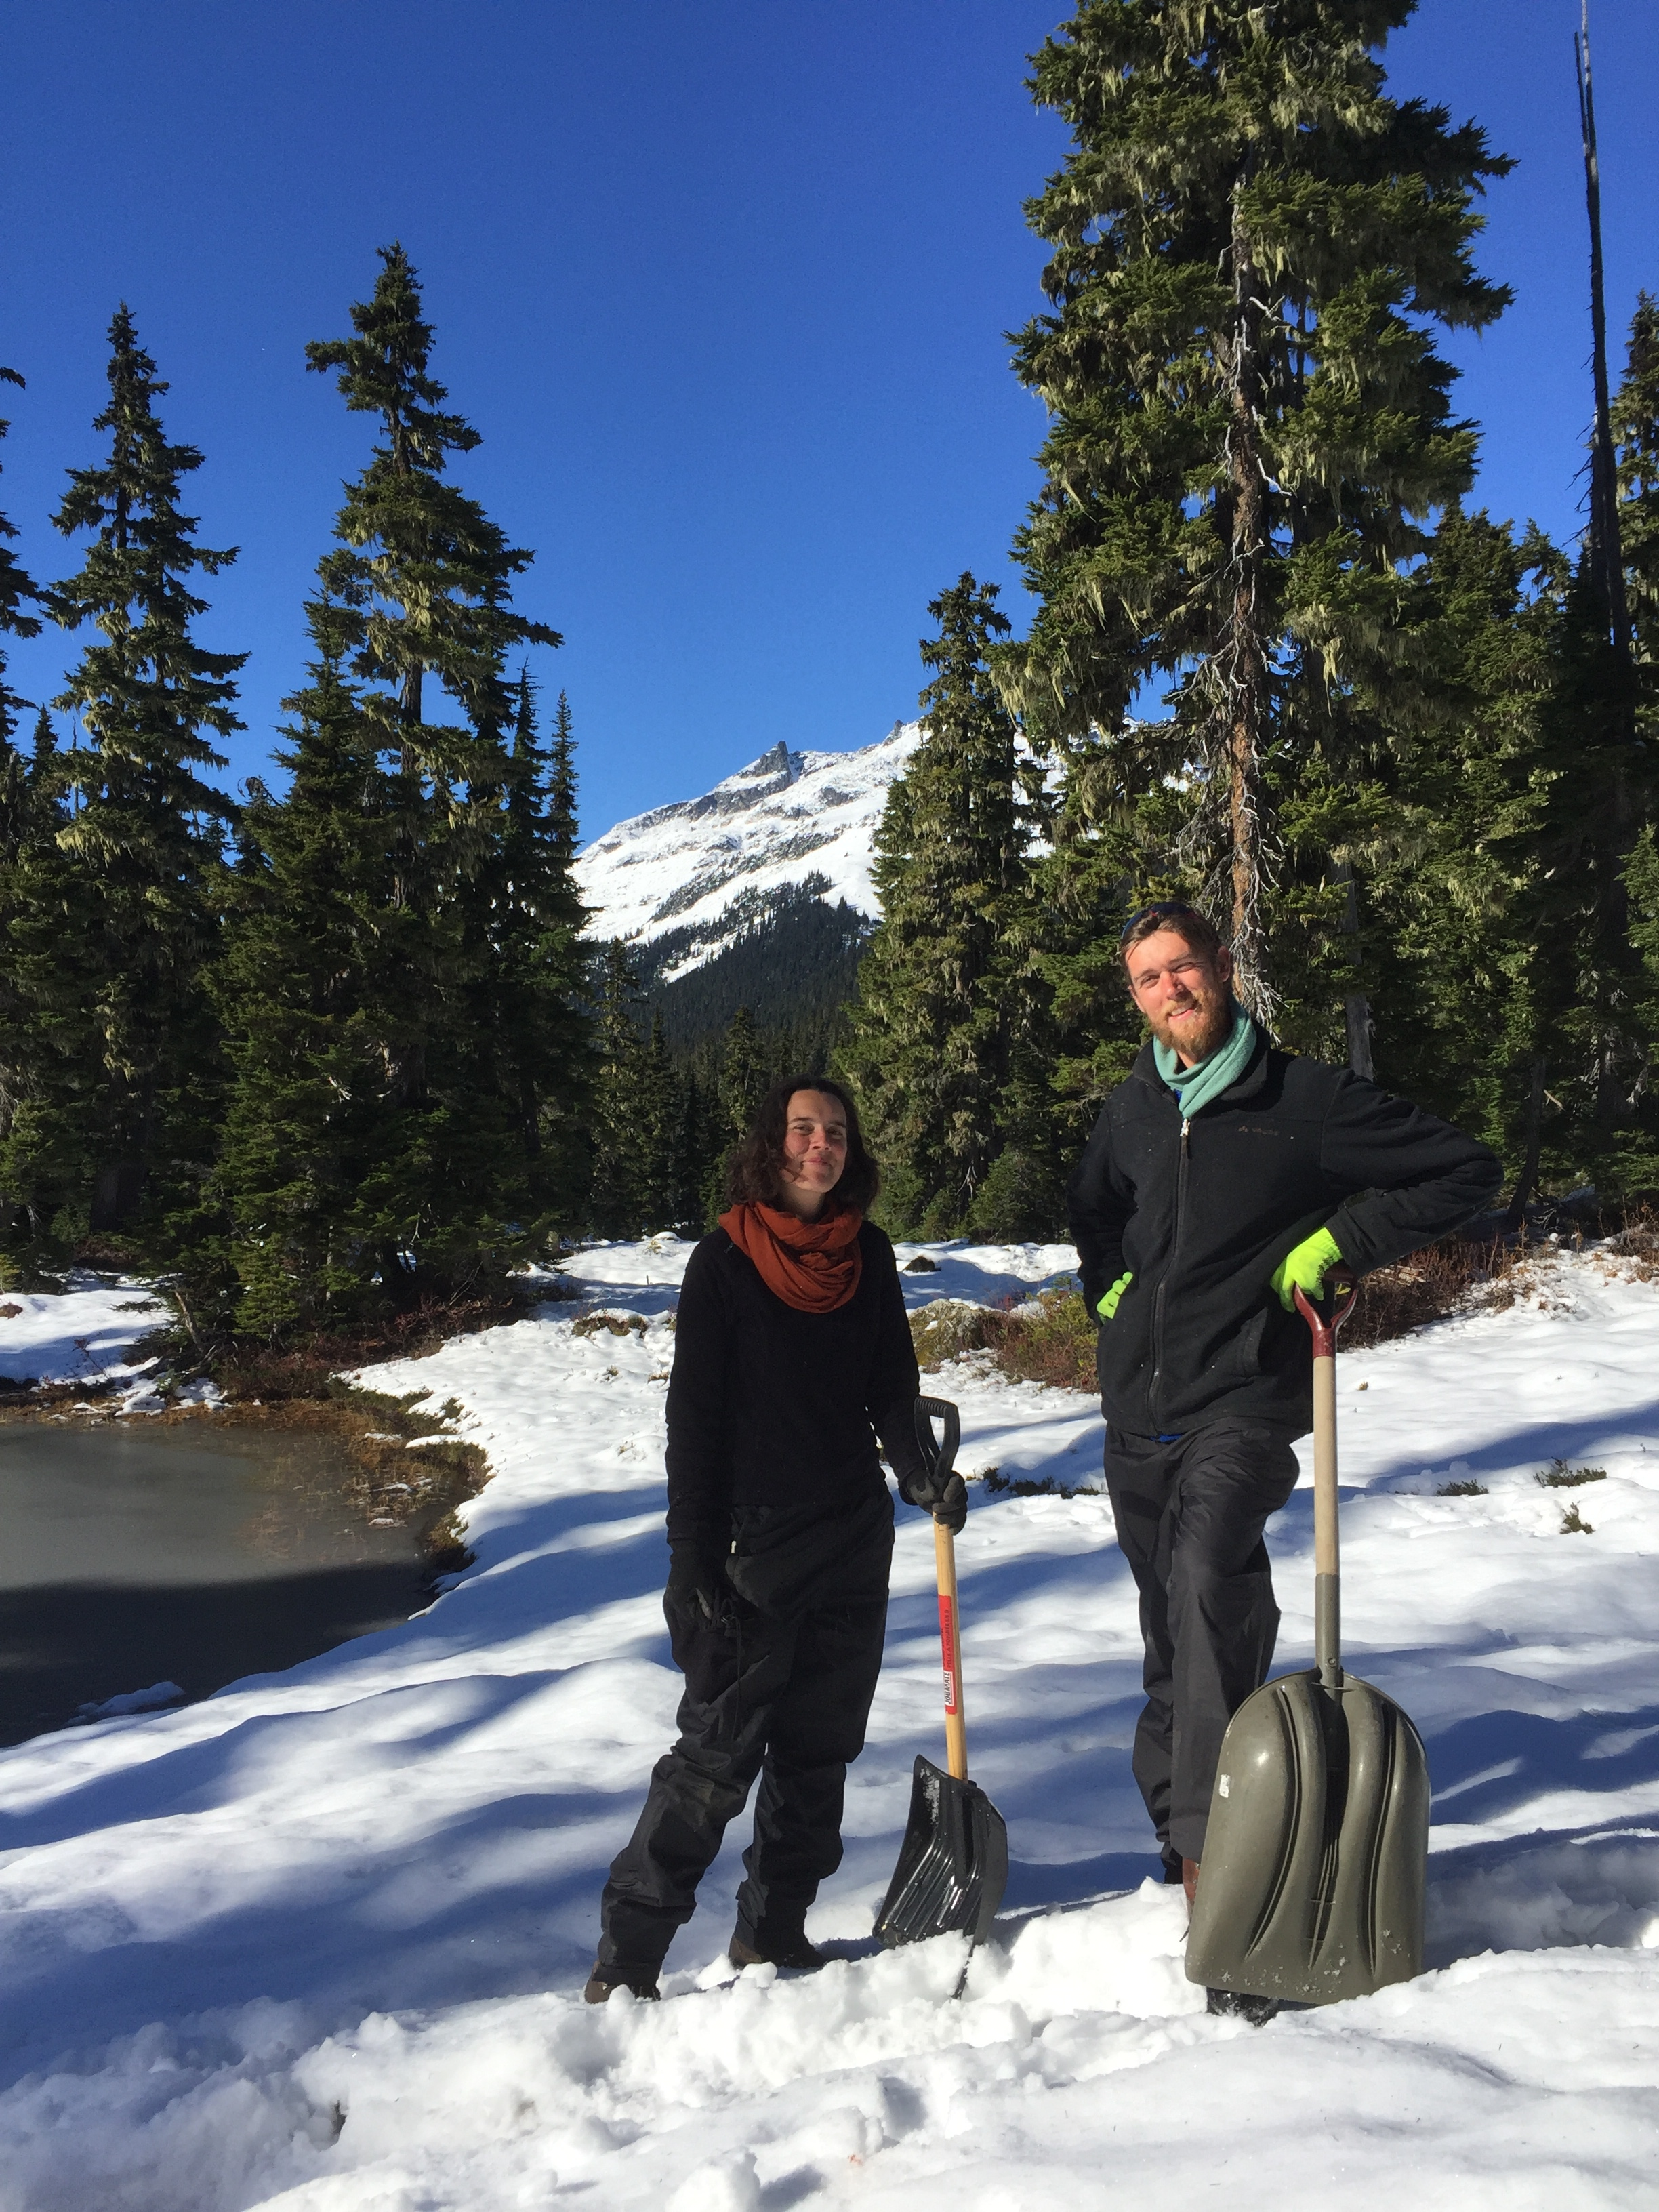 Backcountry Lodge Employment Opportunity for Couple